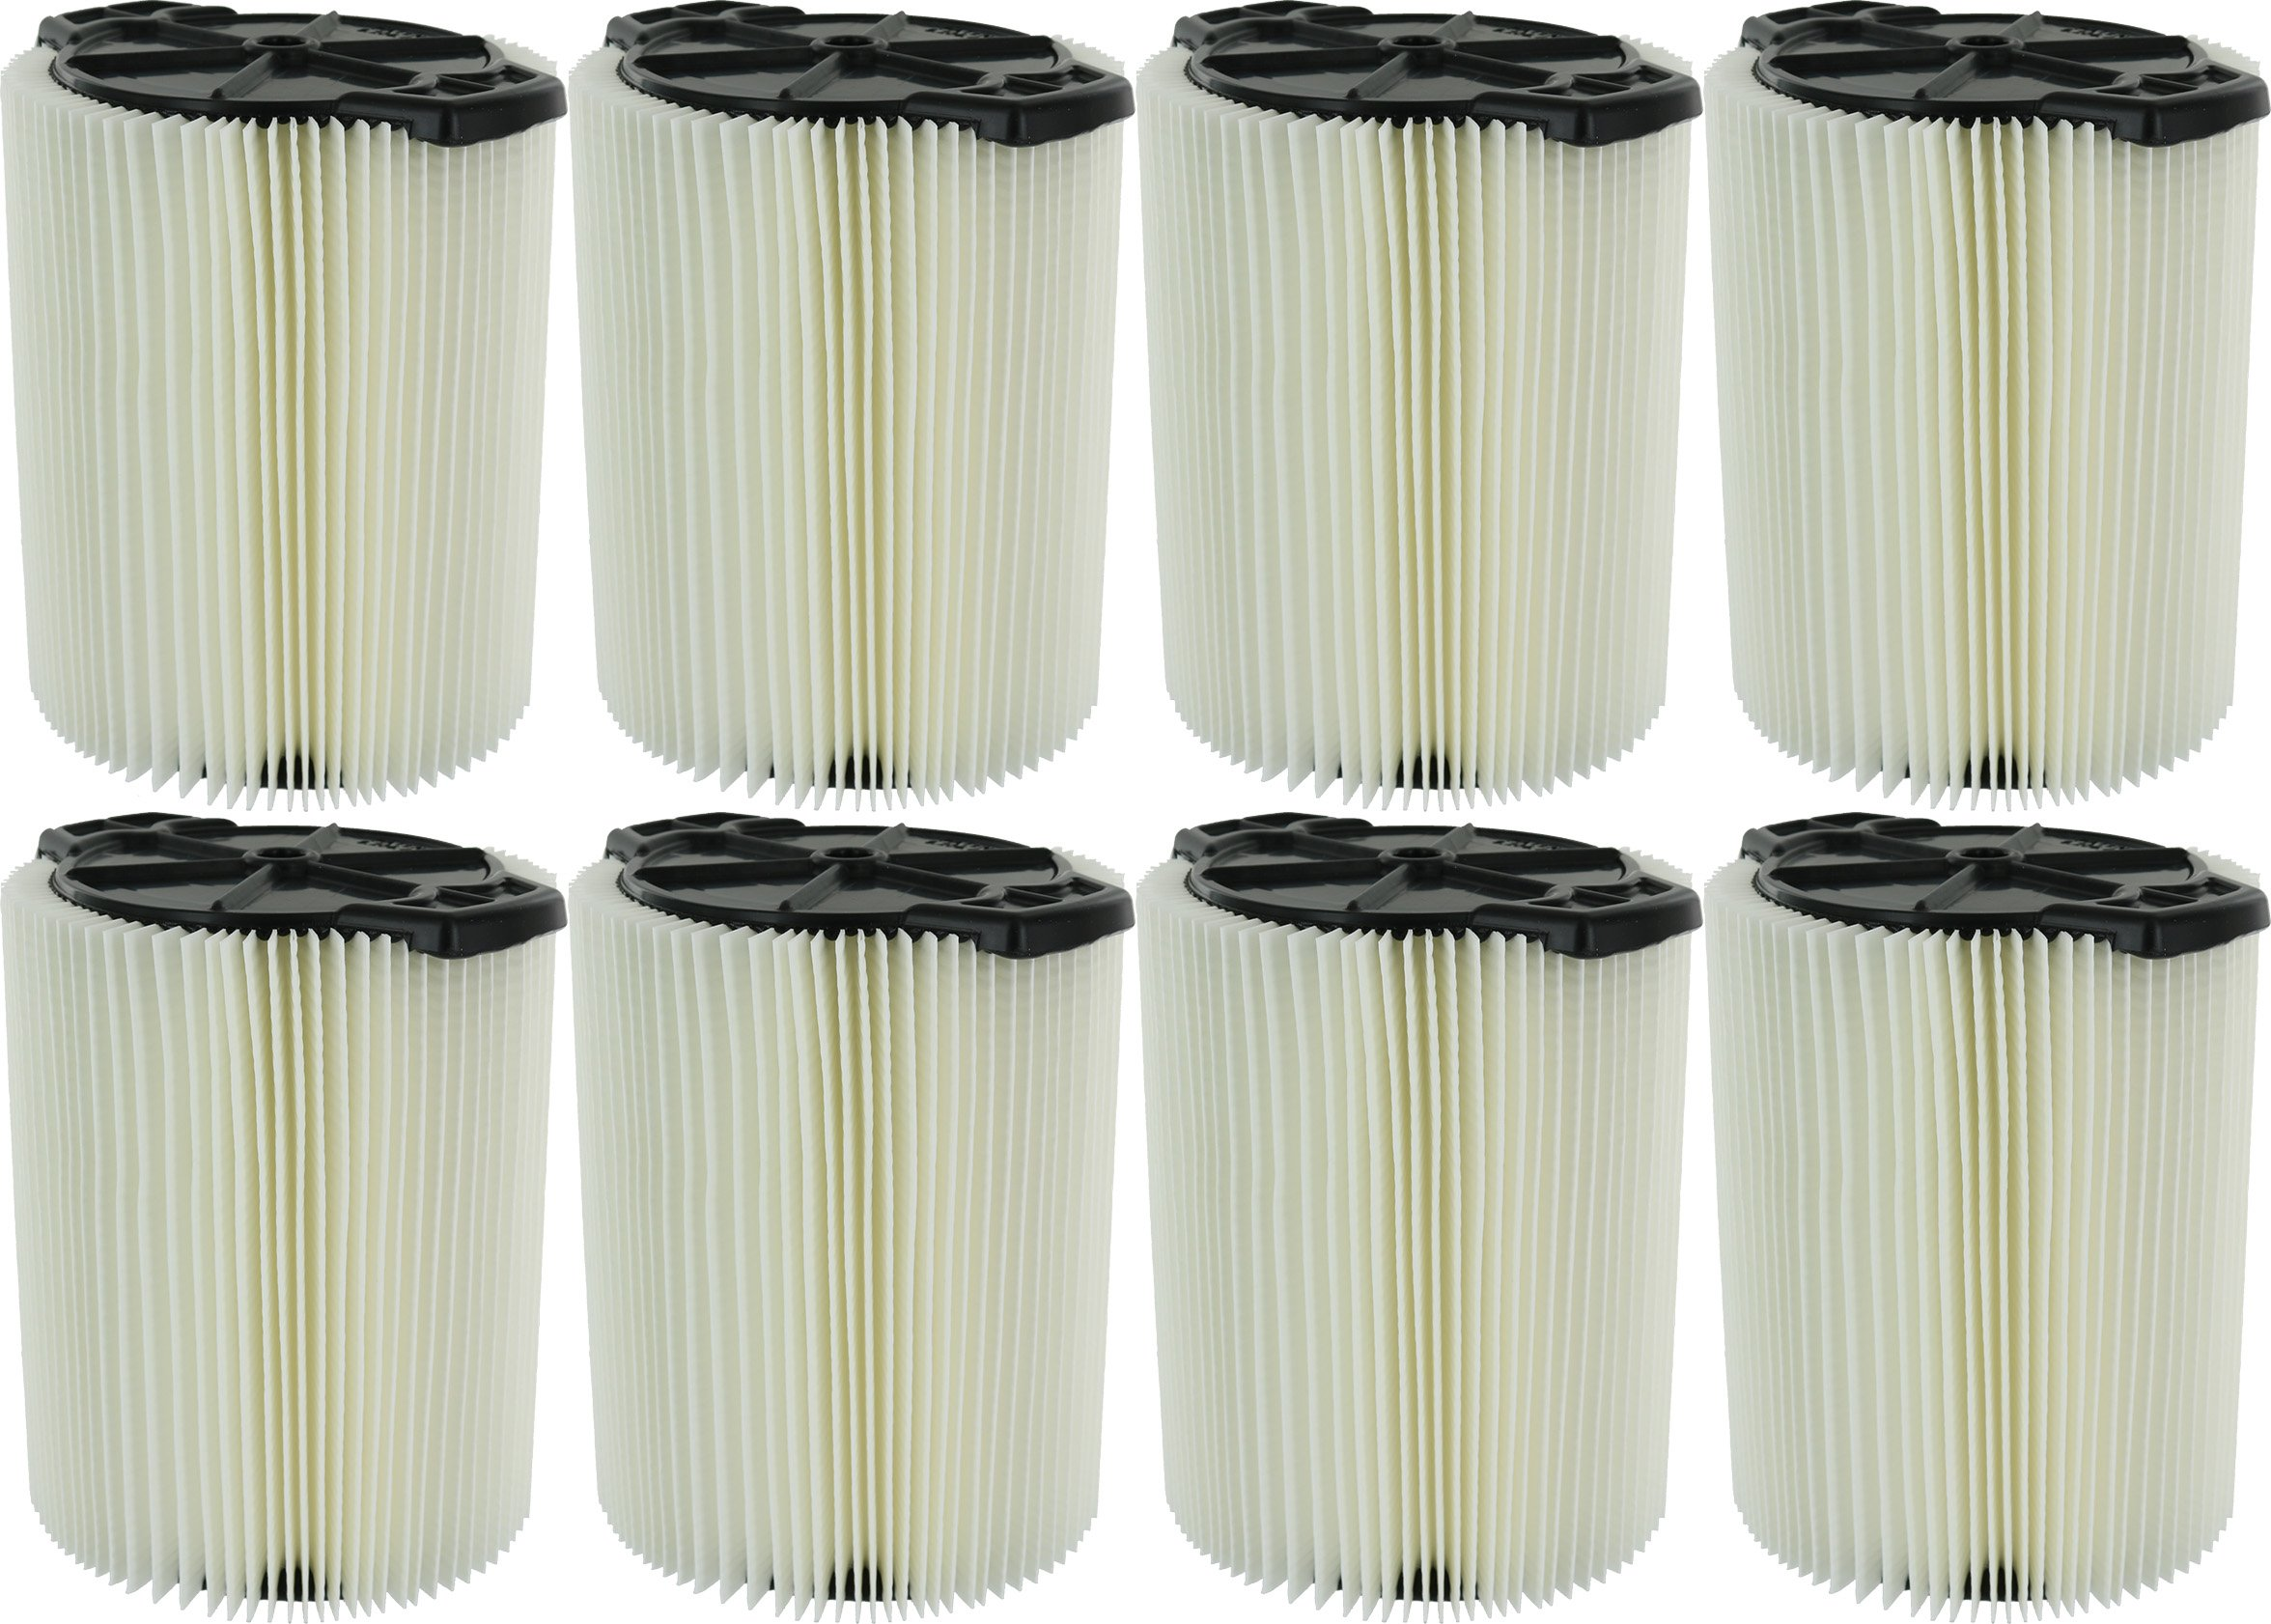 Ridgid VF4000 Genuine Replacement 1-Layer Everyday Dirt Wet/Dry Vac Filter for Ridgid 5-20 Gallon Vacuums (8 pack) by Ridgid